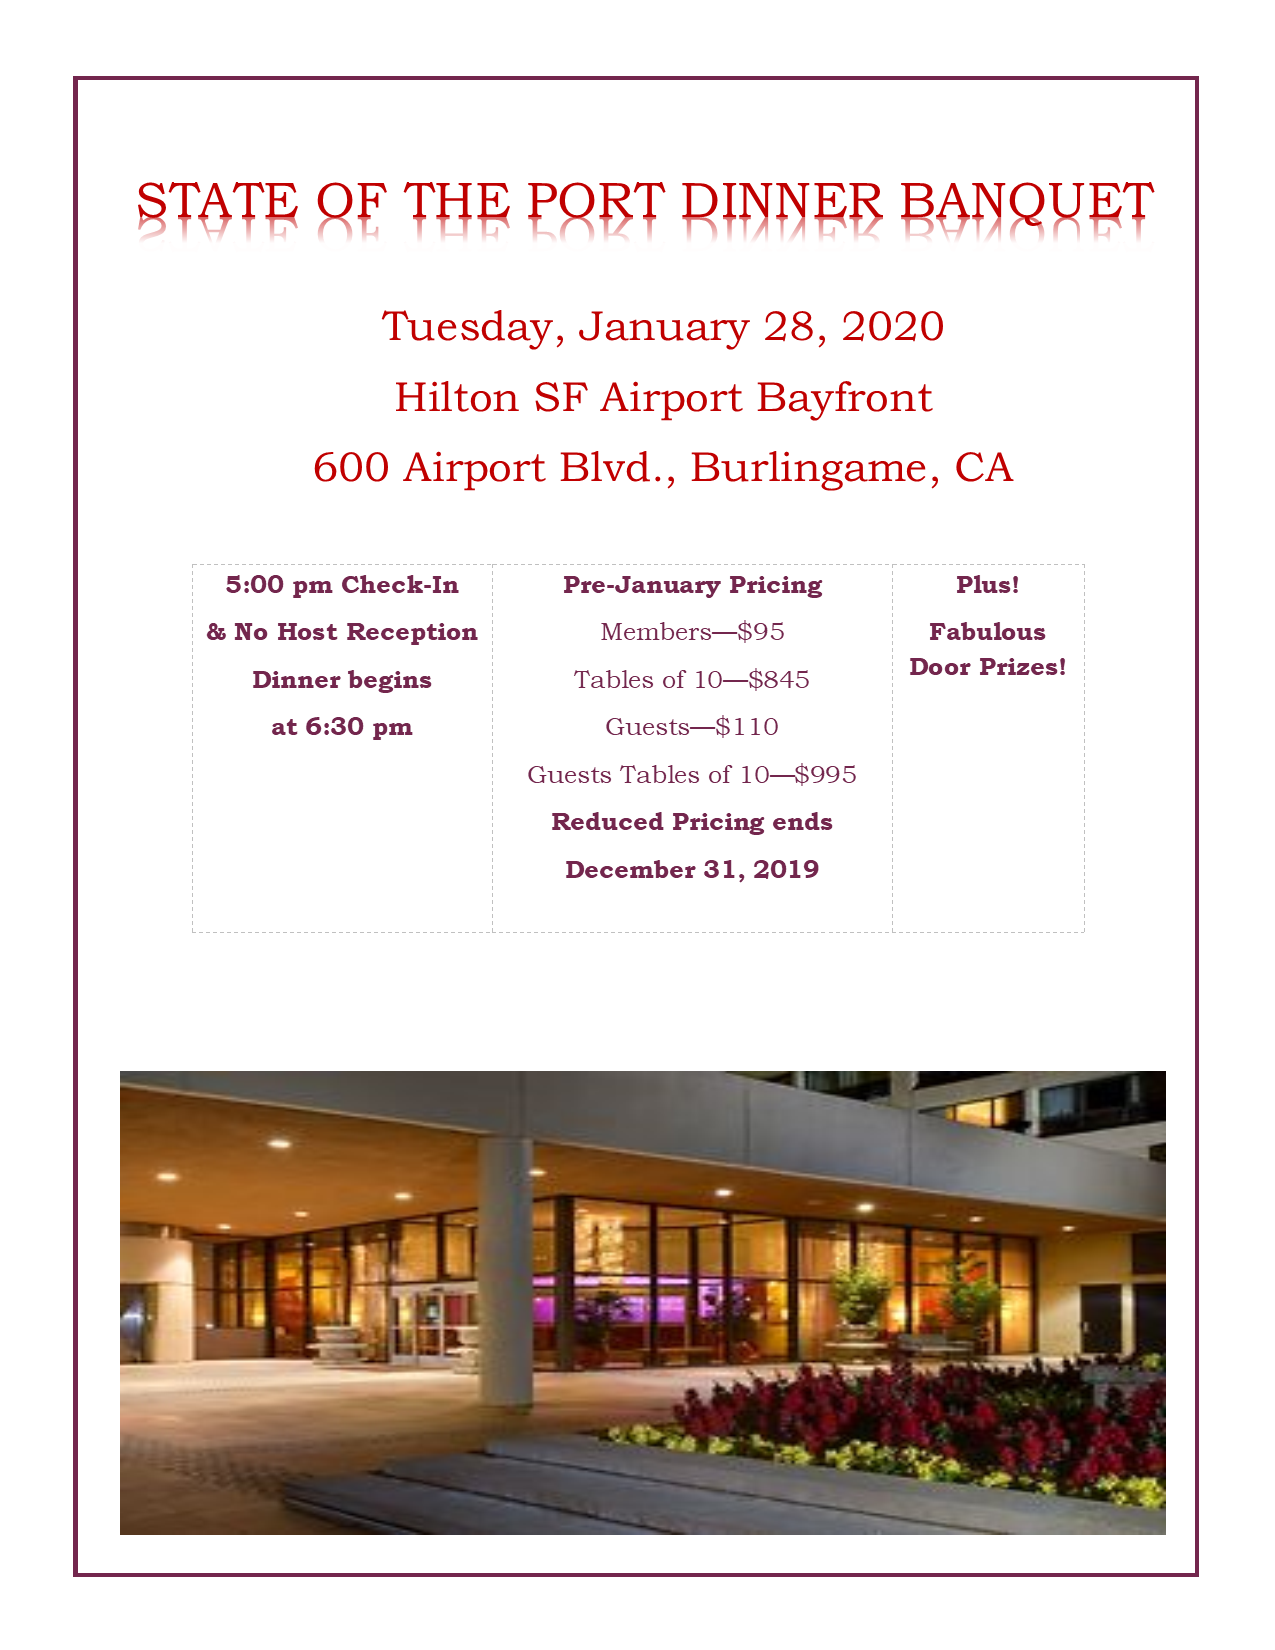 State of the Port Dinner Banquet